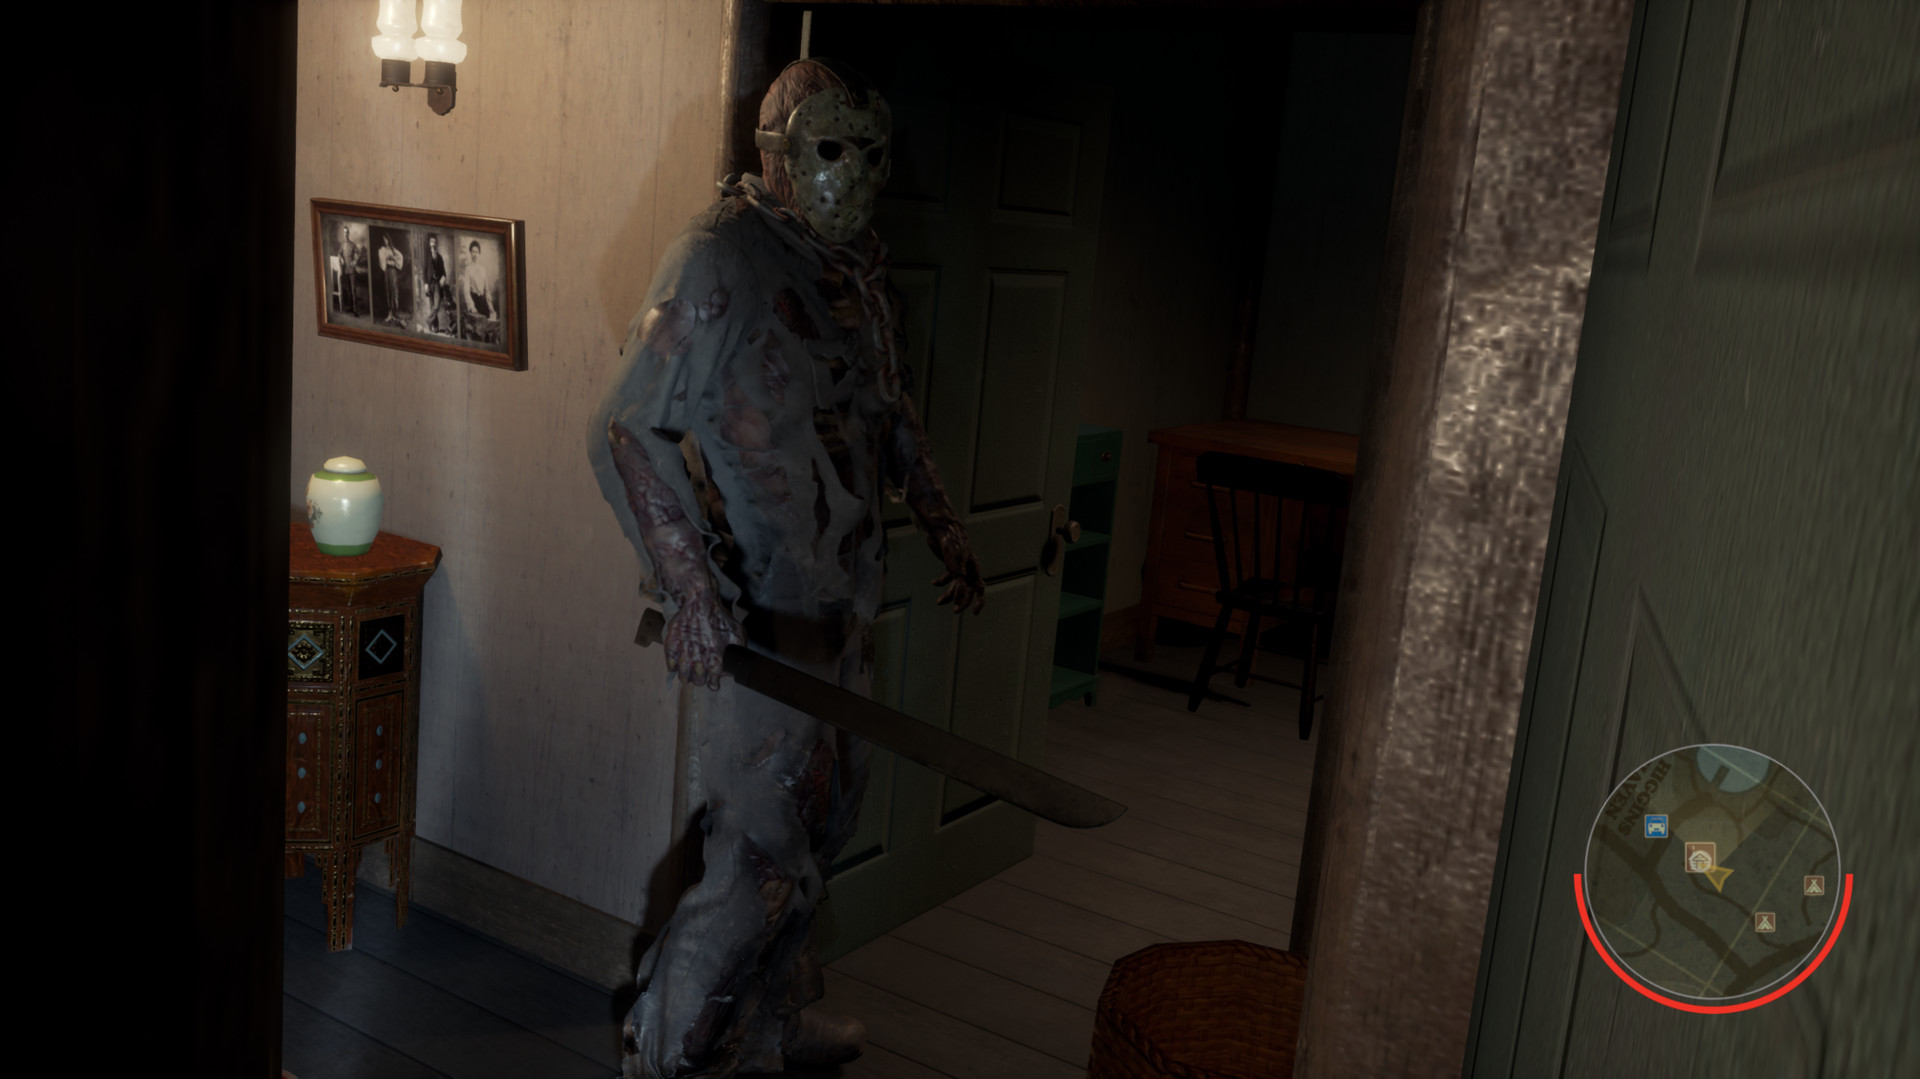 Anunciada la fecha de lanzamiento de Friday the 13th: The Game